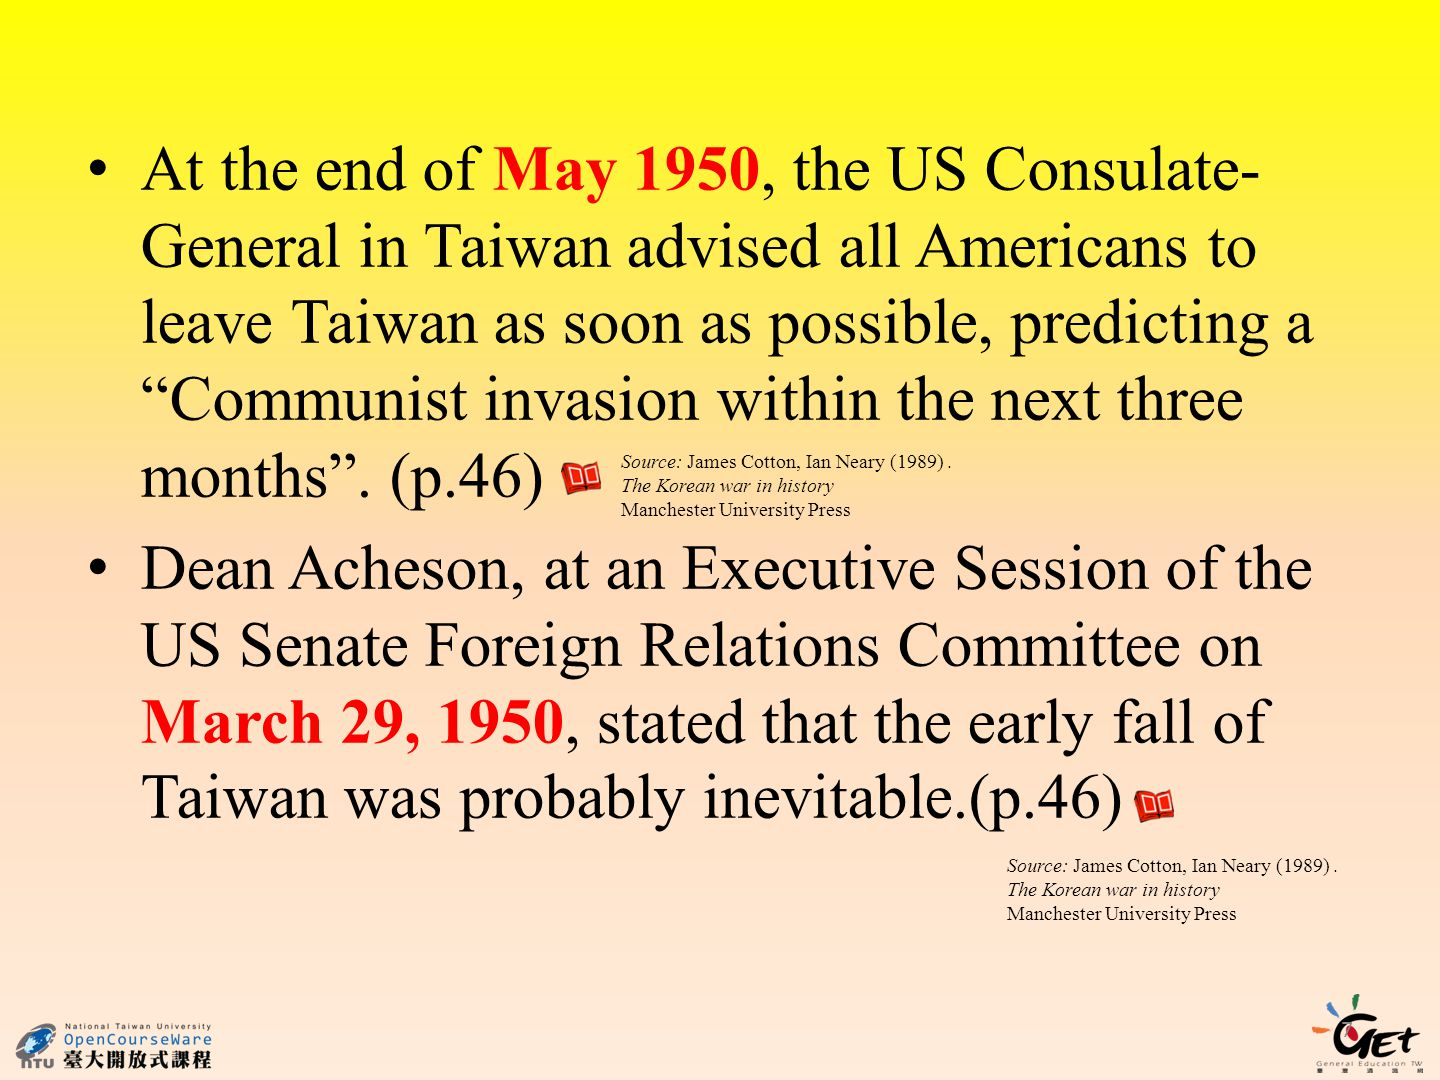 At the end of May 1950, the US Consulate- General in Taiwan advised all Americans to leave Taiwan as soon as possible, predicting a Communist invasion within the next three months.